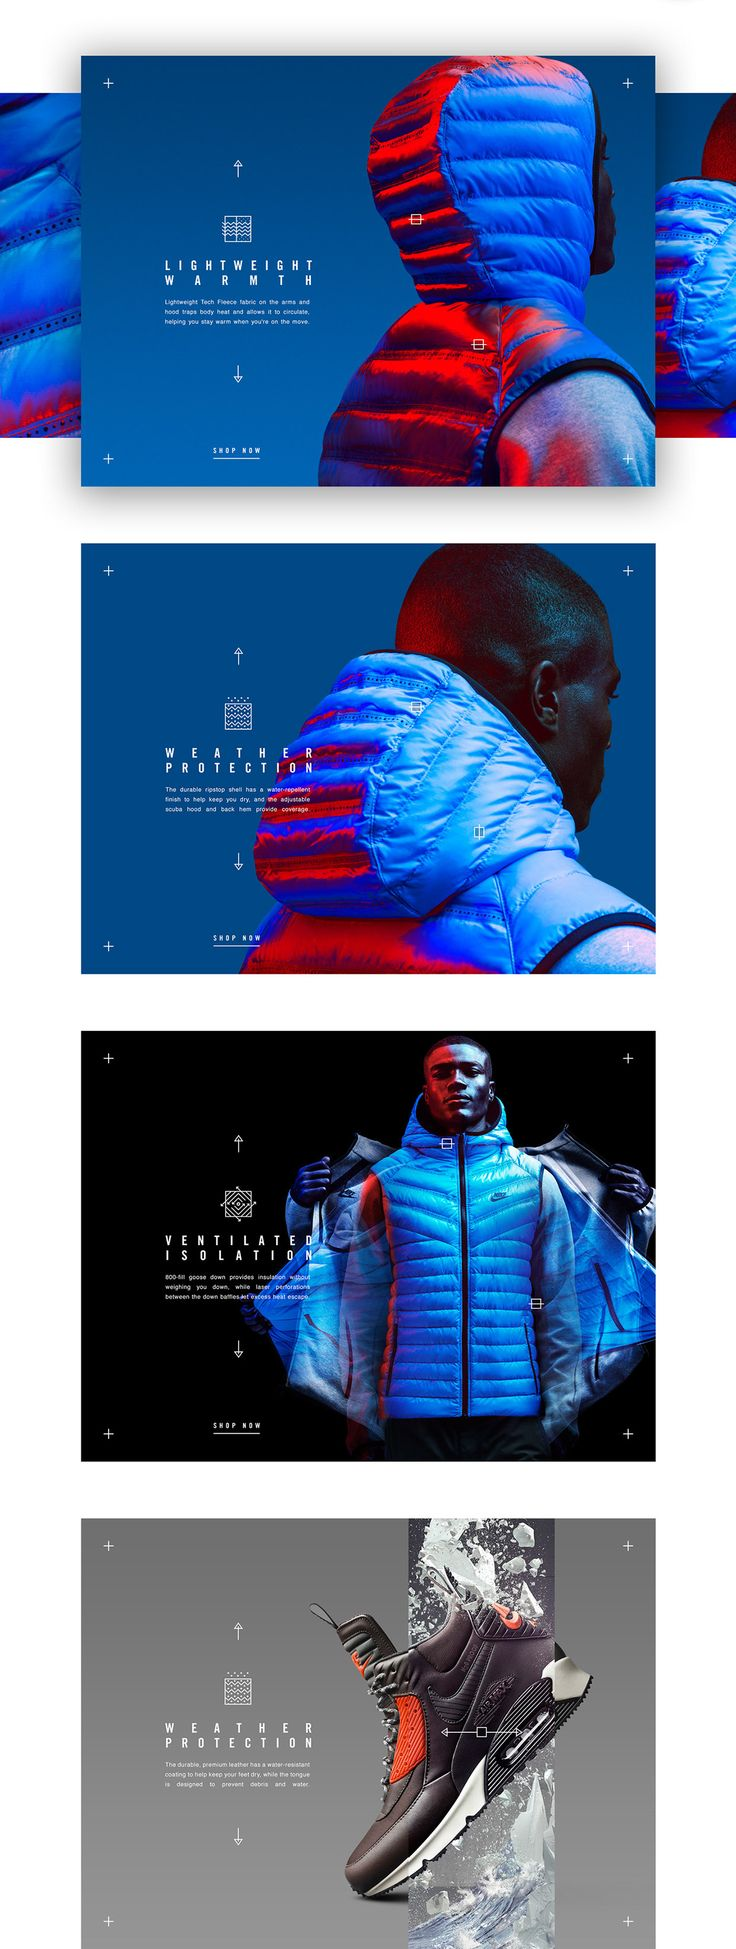 Shakir Dzheyranov is a Creative Director over Spinifex Group based in Los Angeles, USA. He worked with Nike on creating an in-store experience to enhance the user on Nike's unparalleled access to the season's best.